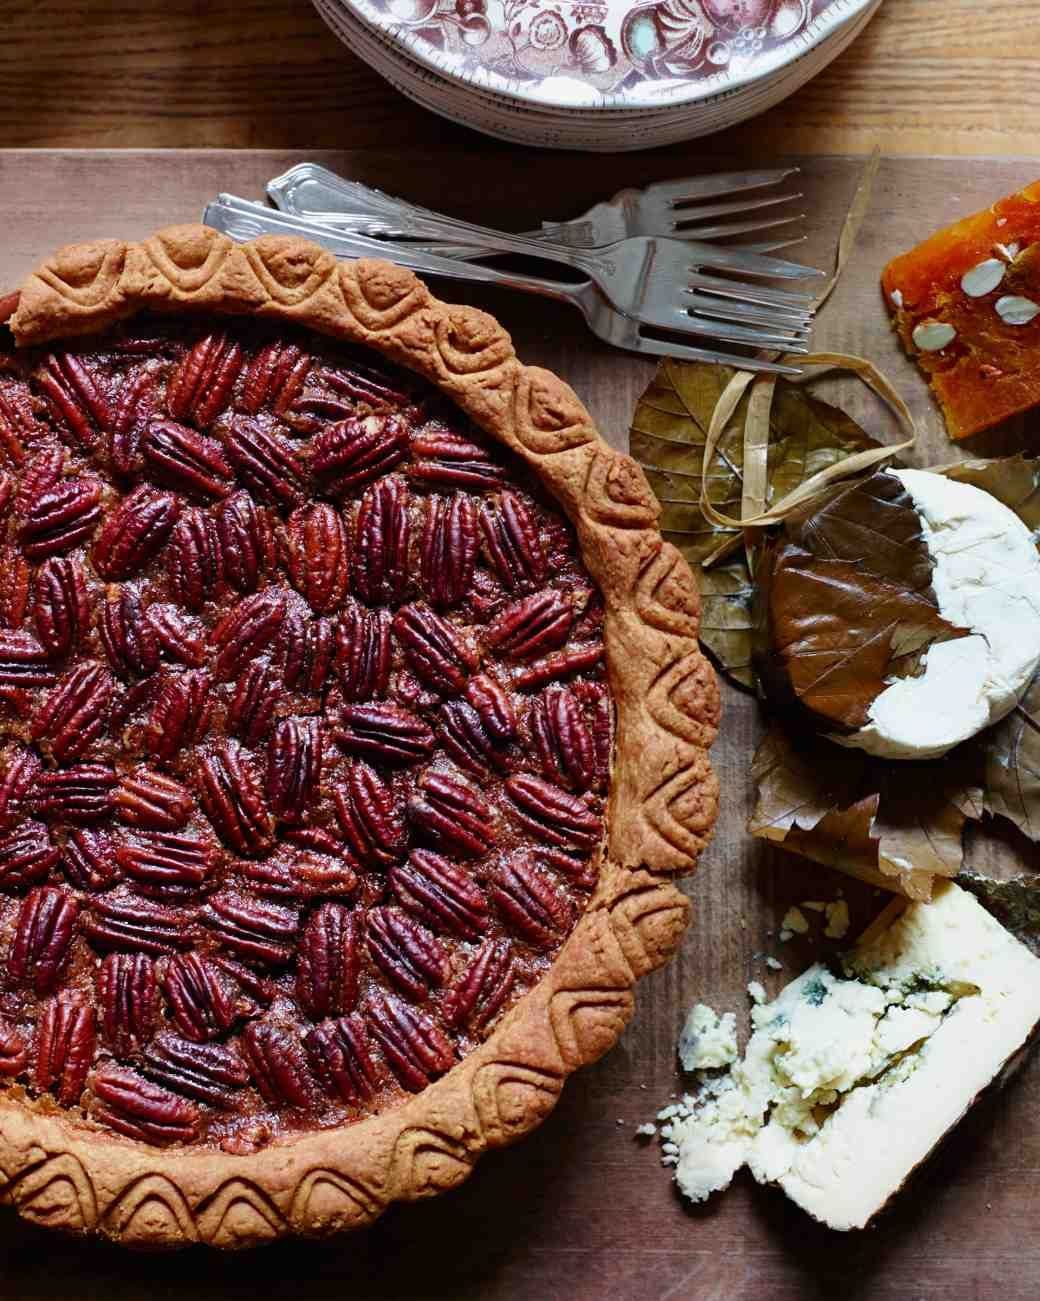 Best 20+ Maple pecan pie ideas on Pinterest—no signup ...